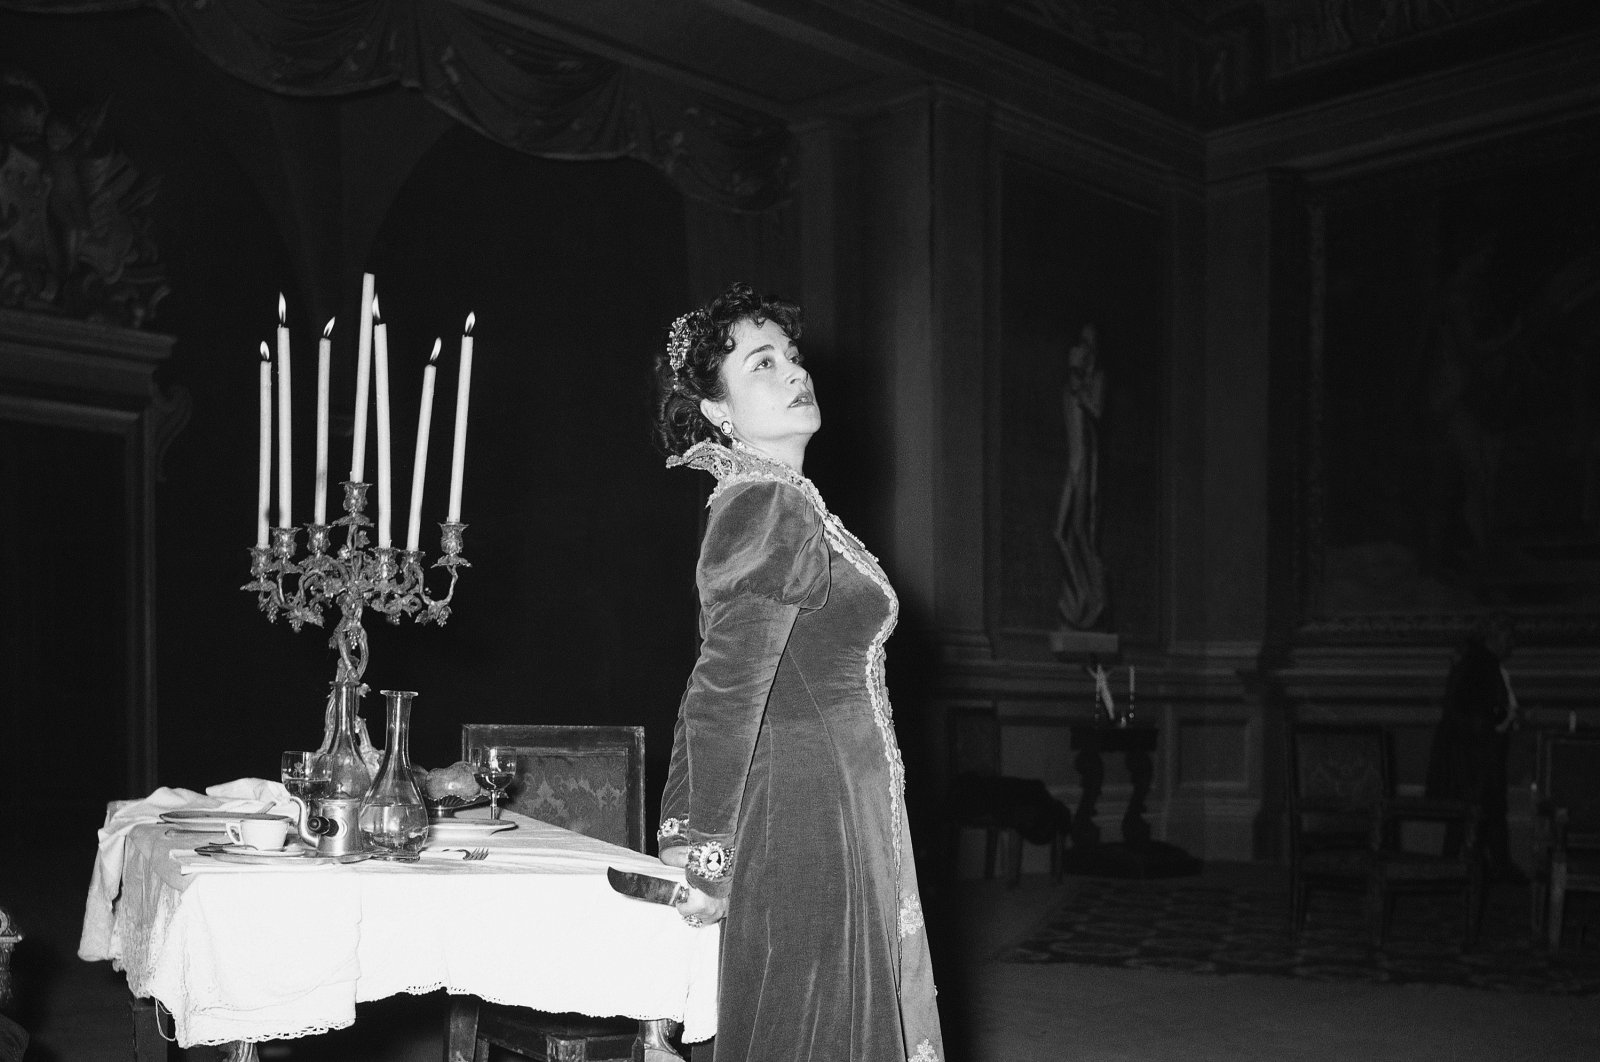 """Turkish soprano Leyla Gencer is shown at a dress rehearsal of Puccini's """"Tosca"""" at the San Carlo Opera House in Naples, Italy, Jan. 20, 1955. (AP Photo)"""